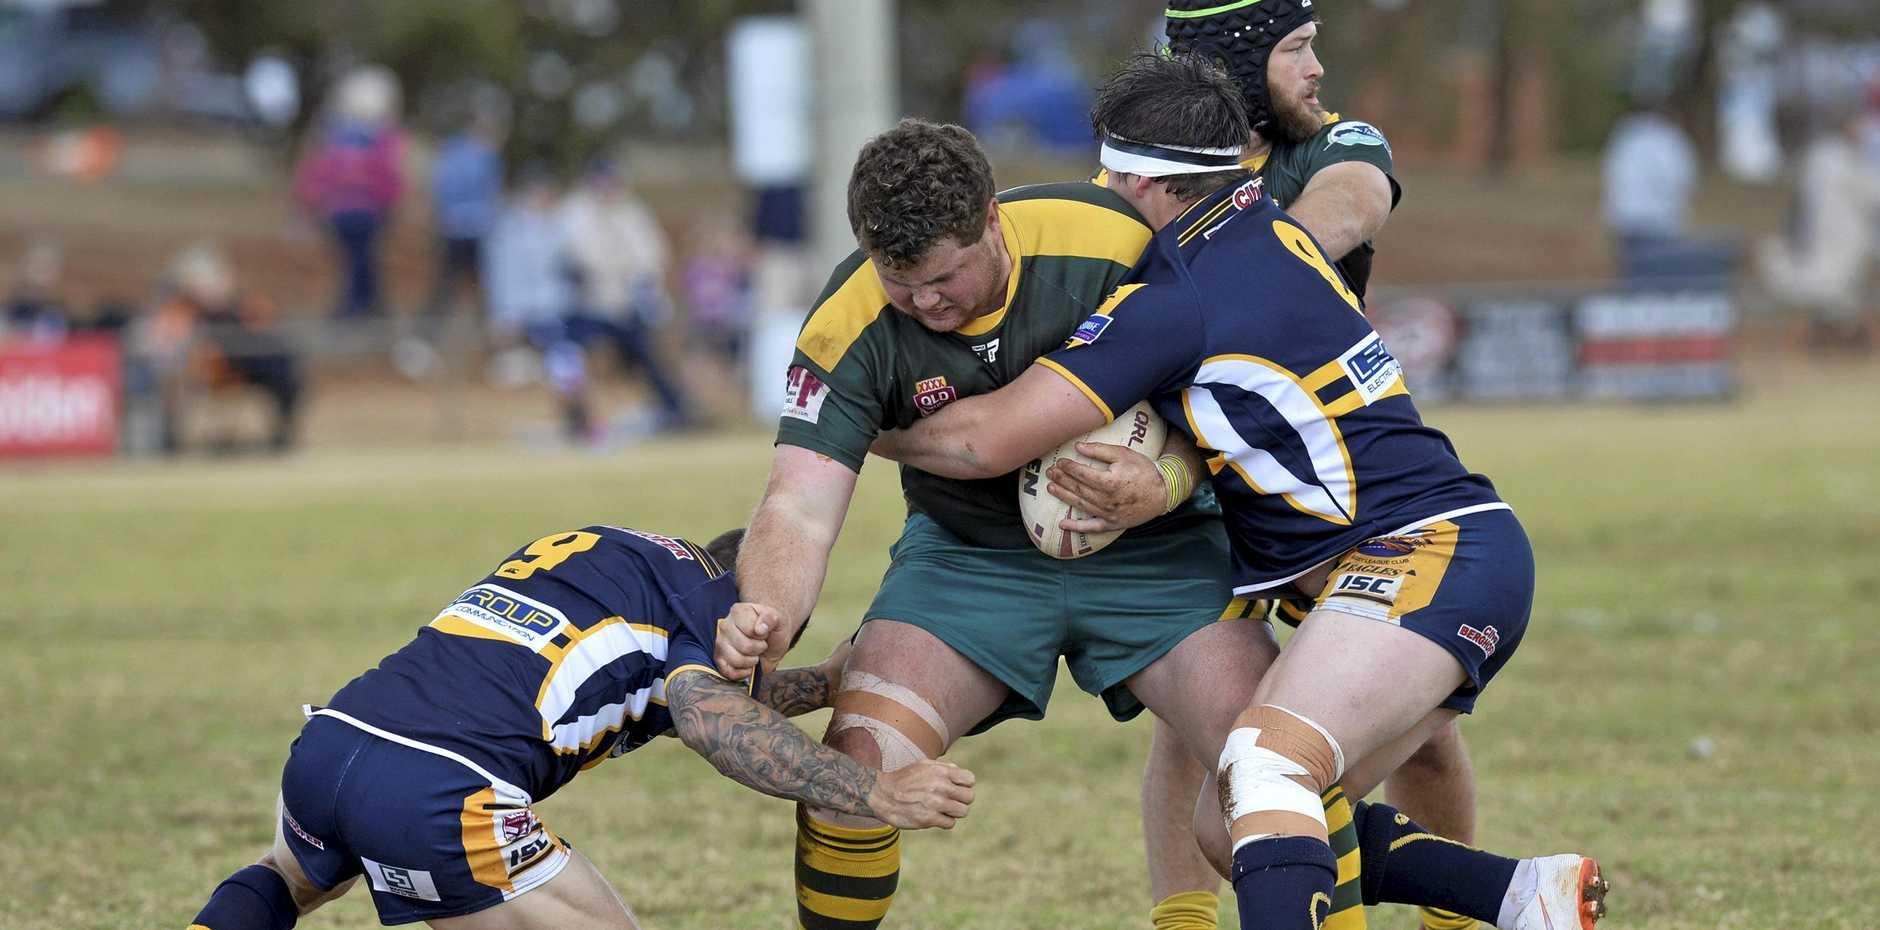 SEASON OPENER: Mitch Duff of Wattles playing against Highfields in last year's TRL Premiership preliminary final. His 2019 season will start for Toowoomba Clydesdales on February 16.